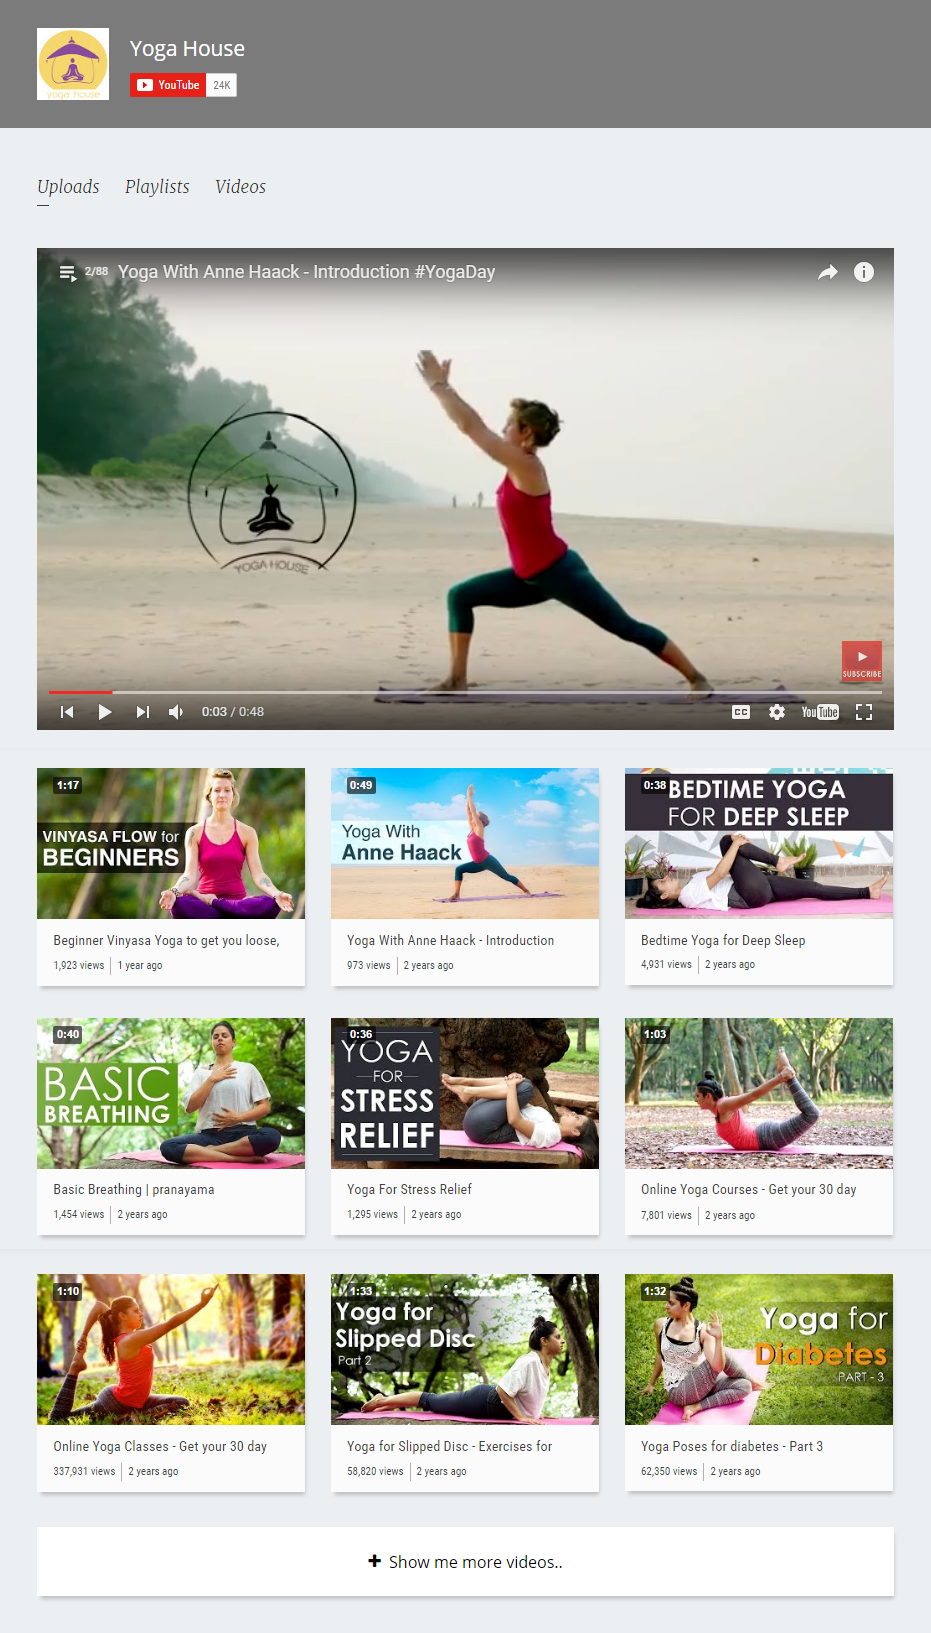 youmax-channel-embeds-for-youtube-businesses screenshot 3